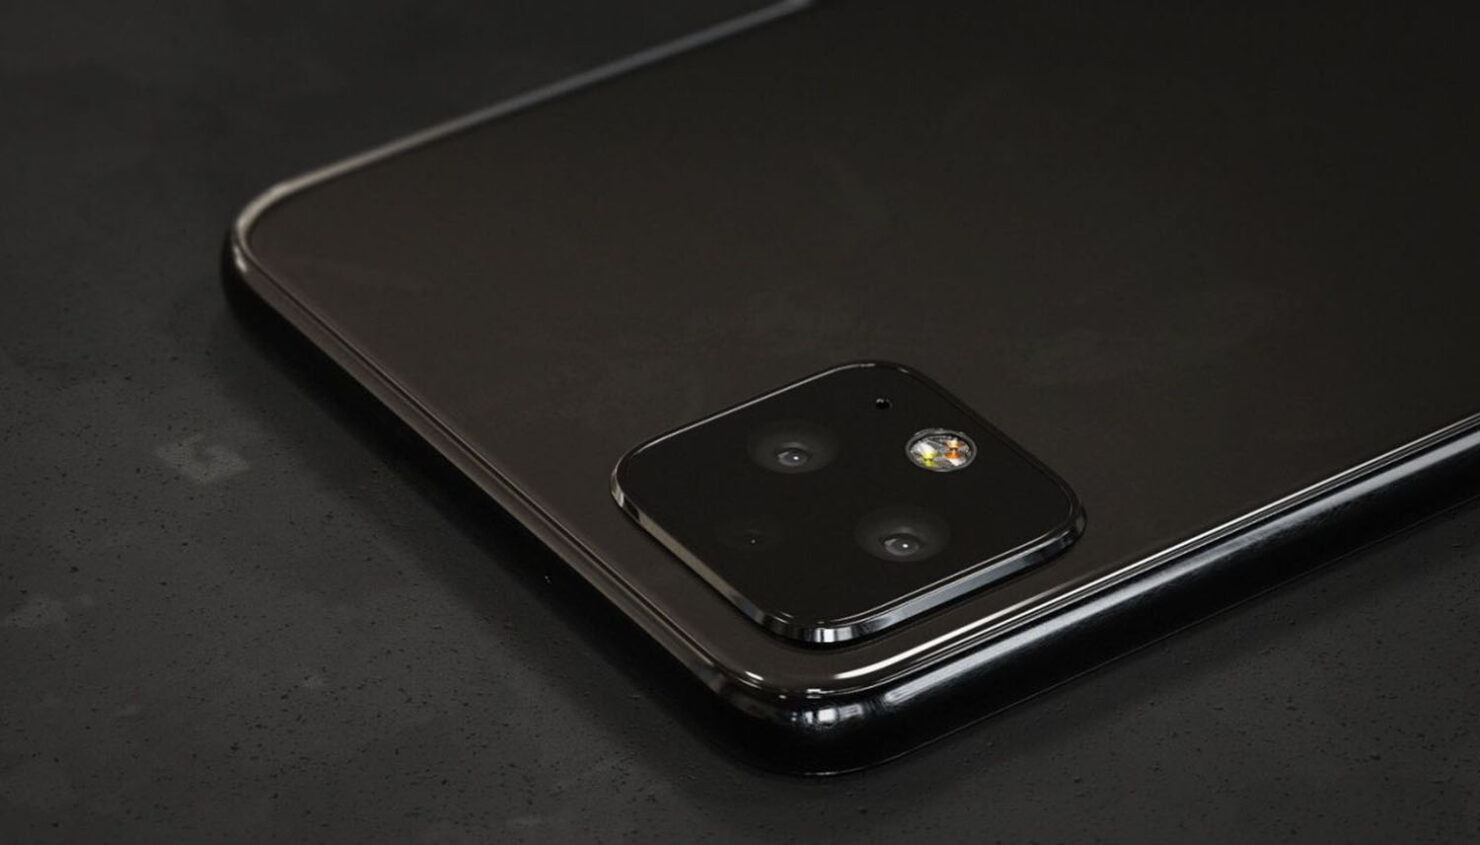 Google Pixel 4 and Pixel 3a Have Disappeared From T-Mobile's Website